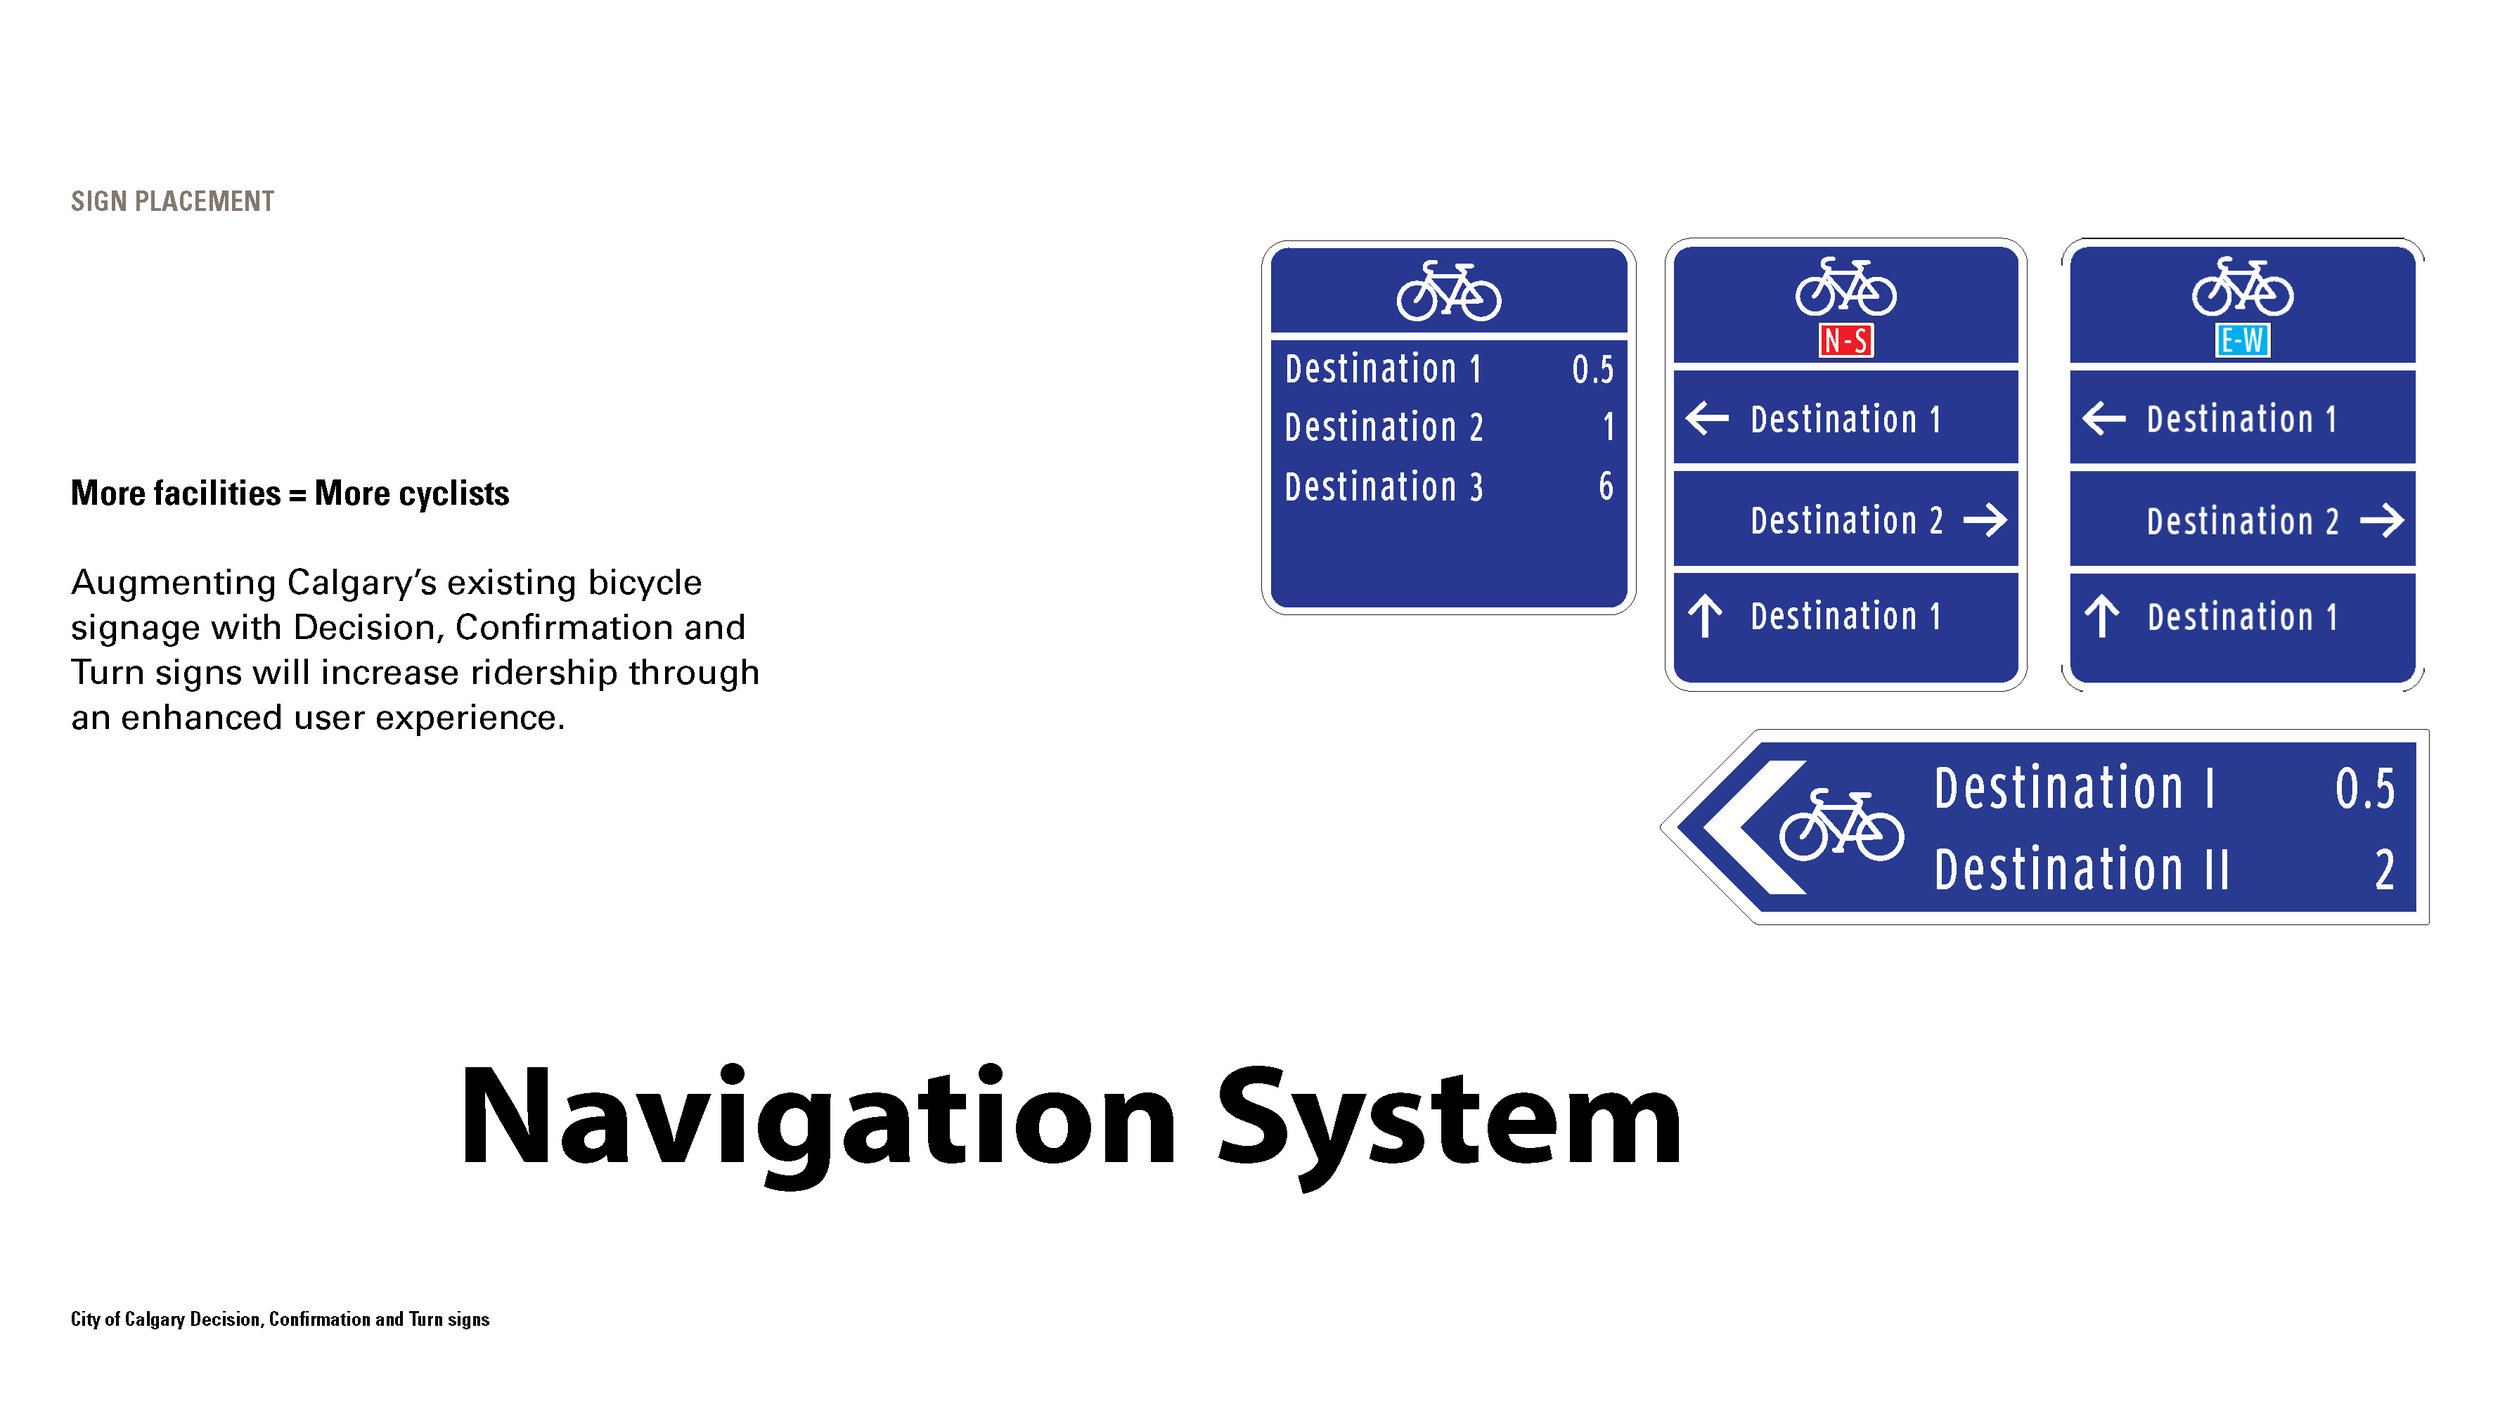 Complete Navigation System designed for Calgary